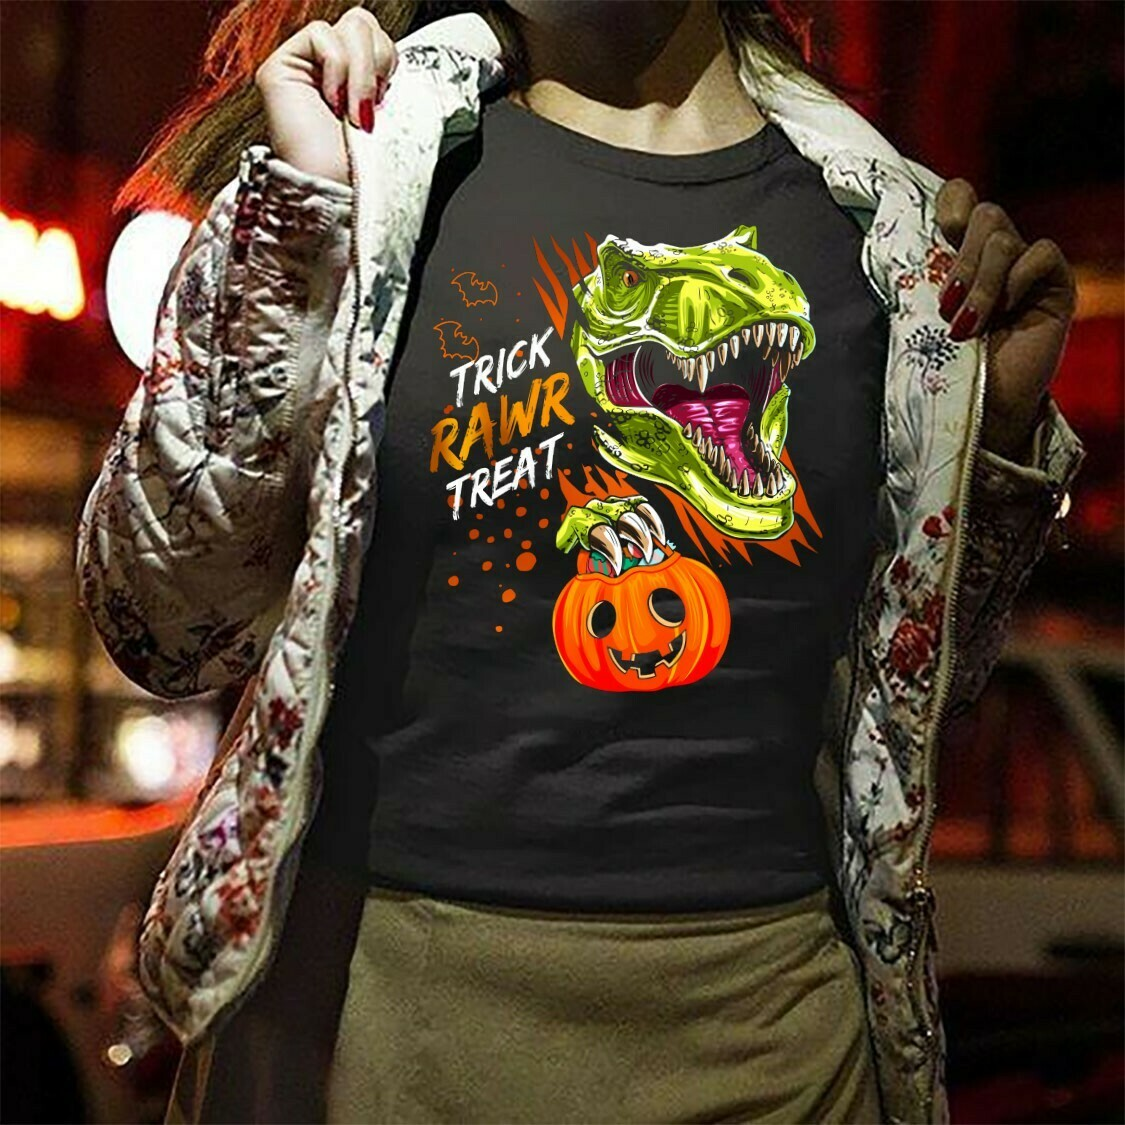 Dinosaur T-rex Trick Rawr Treat Halloween Pumpkin Candy Not So Scary Gifts For Halloween day Family Vacation Party Unisex T-shirt Long Sleeve Sweatshirt Hoodie Jolly Family Gifts